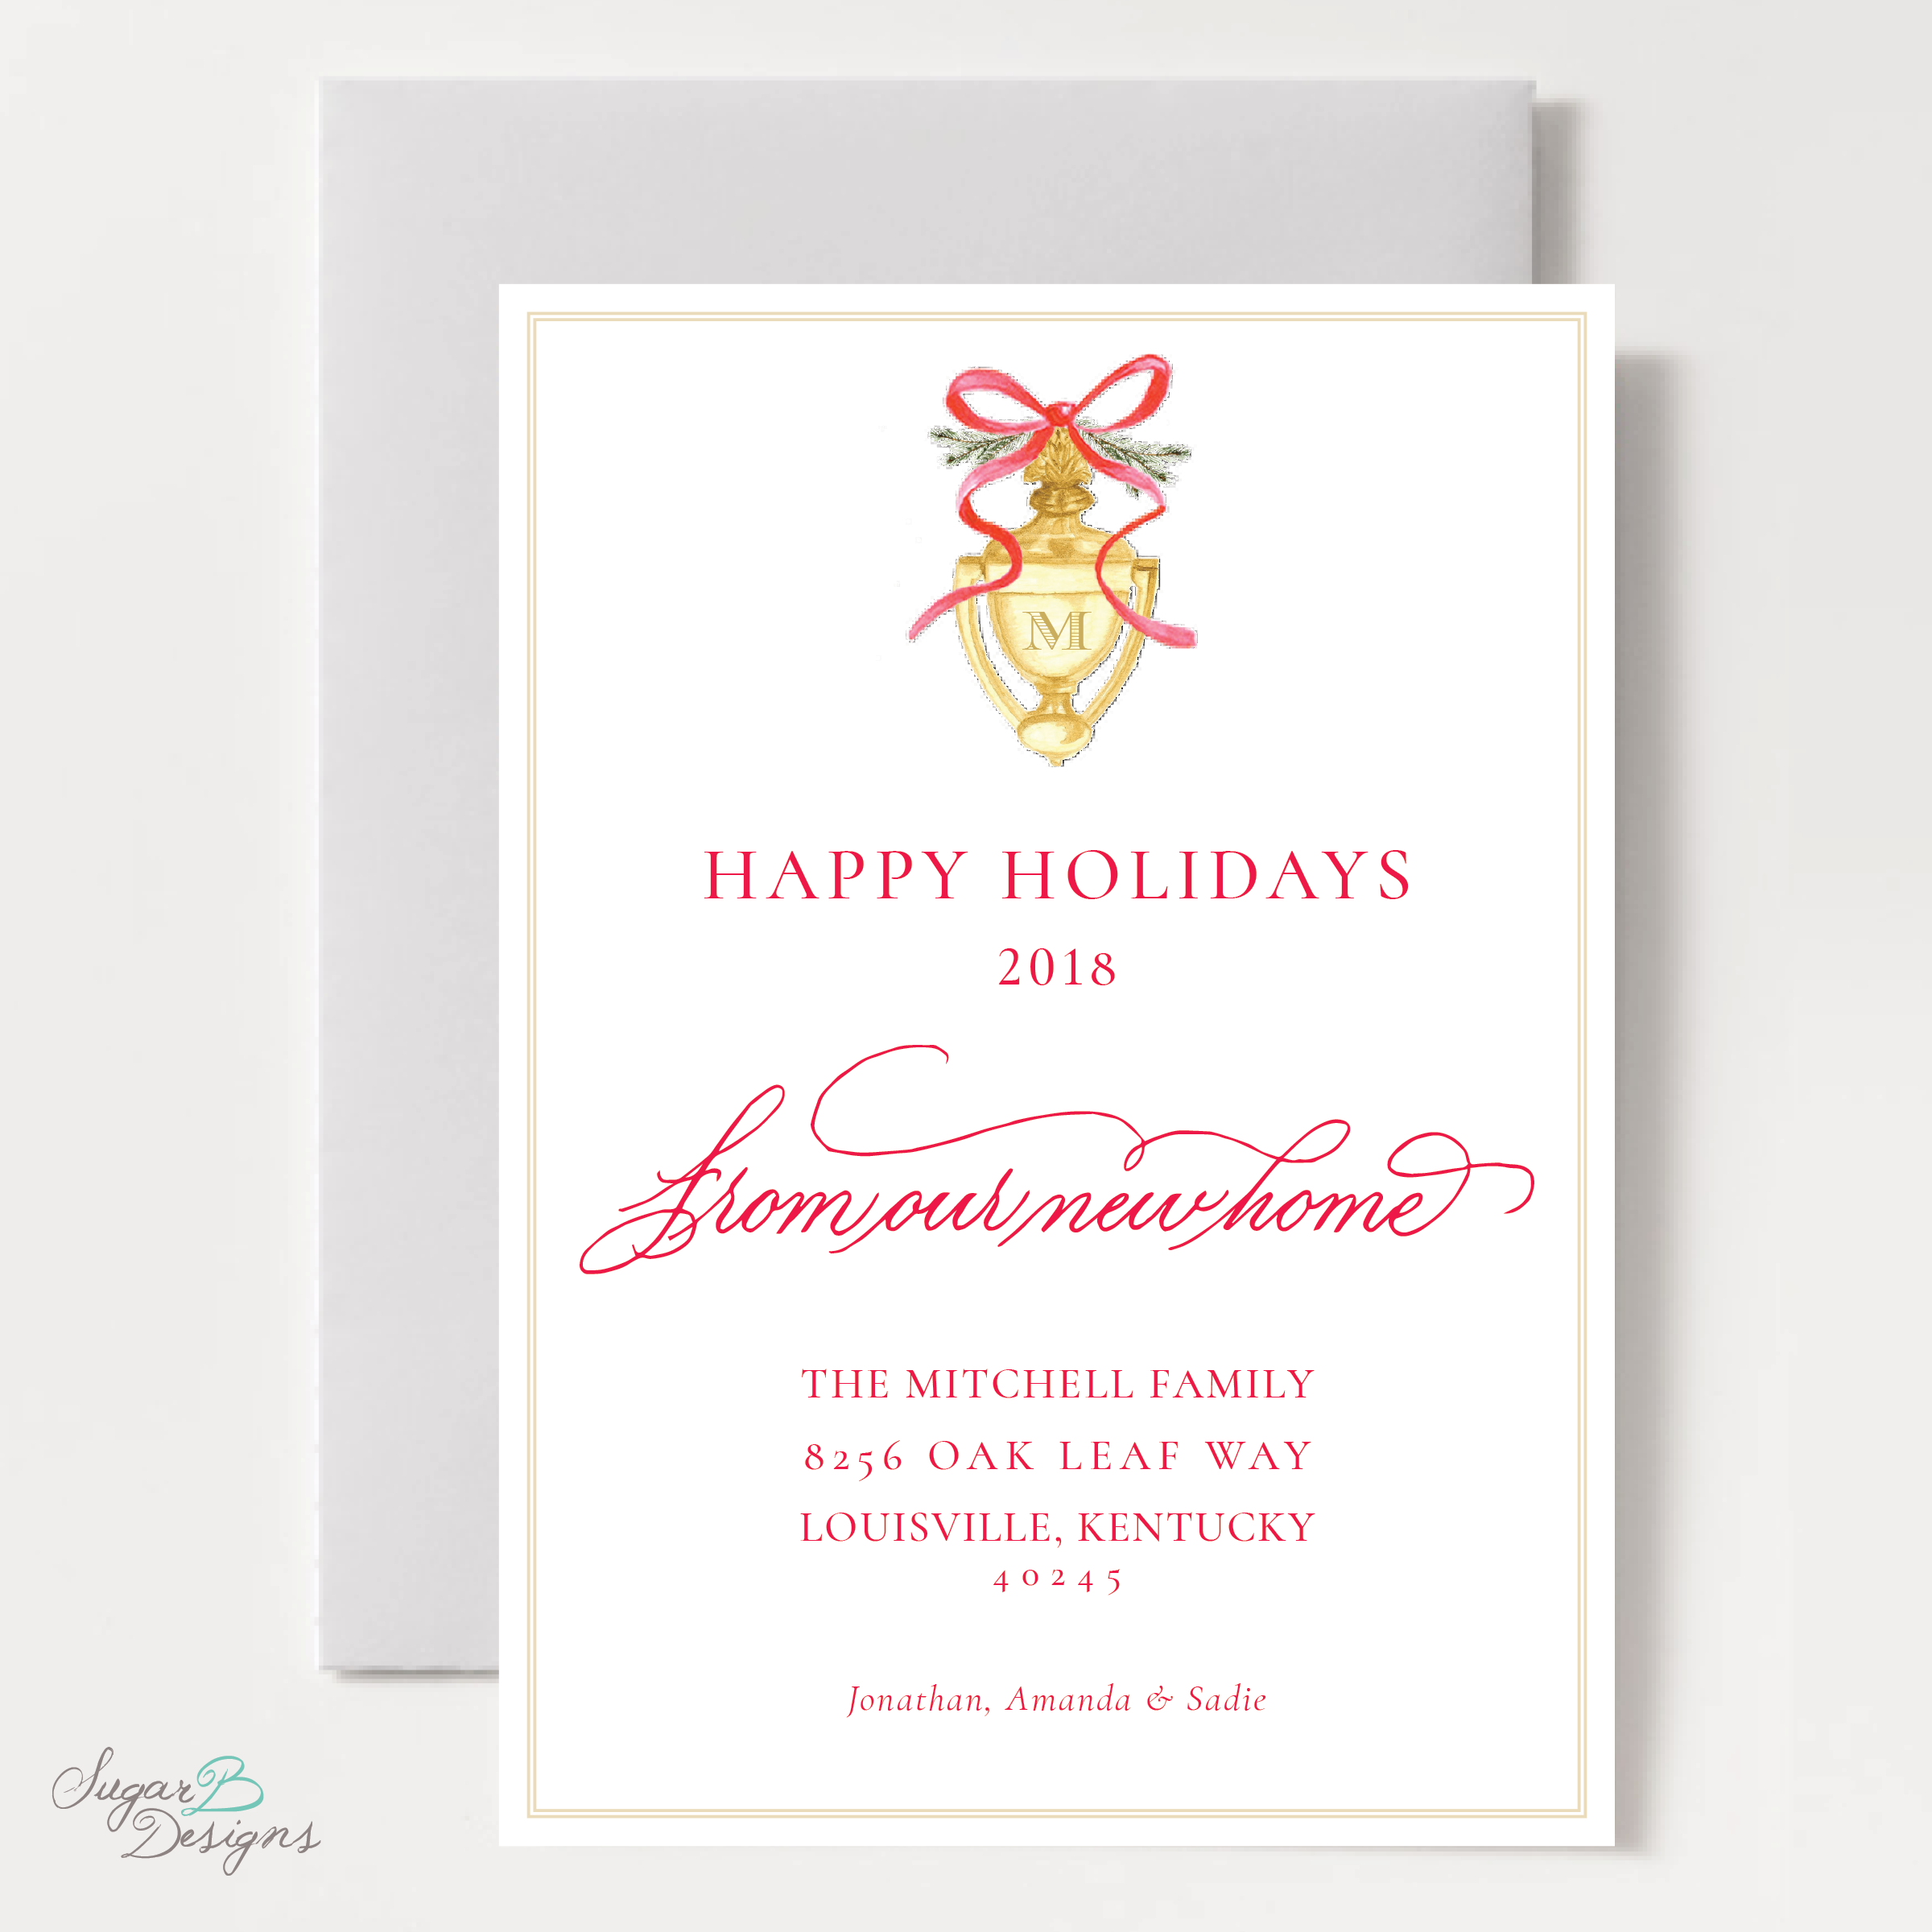 Door Knocker Red Change of Address Christmas Card front by Sugar B Designs.png